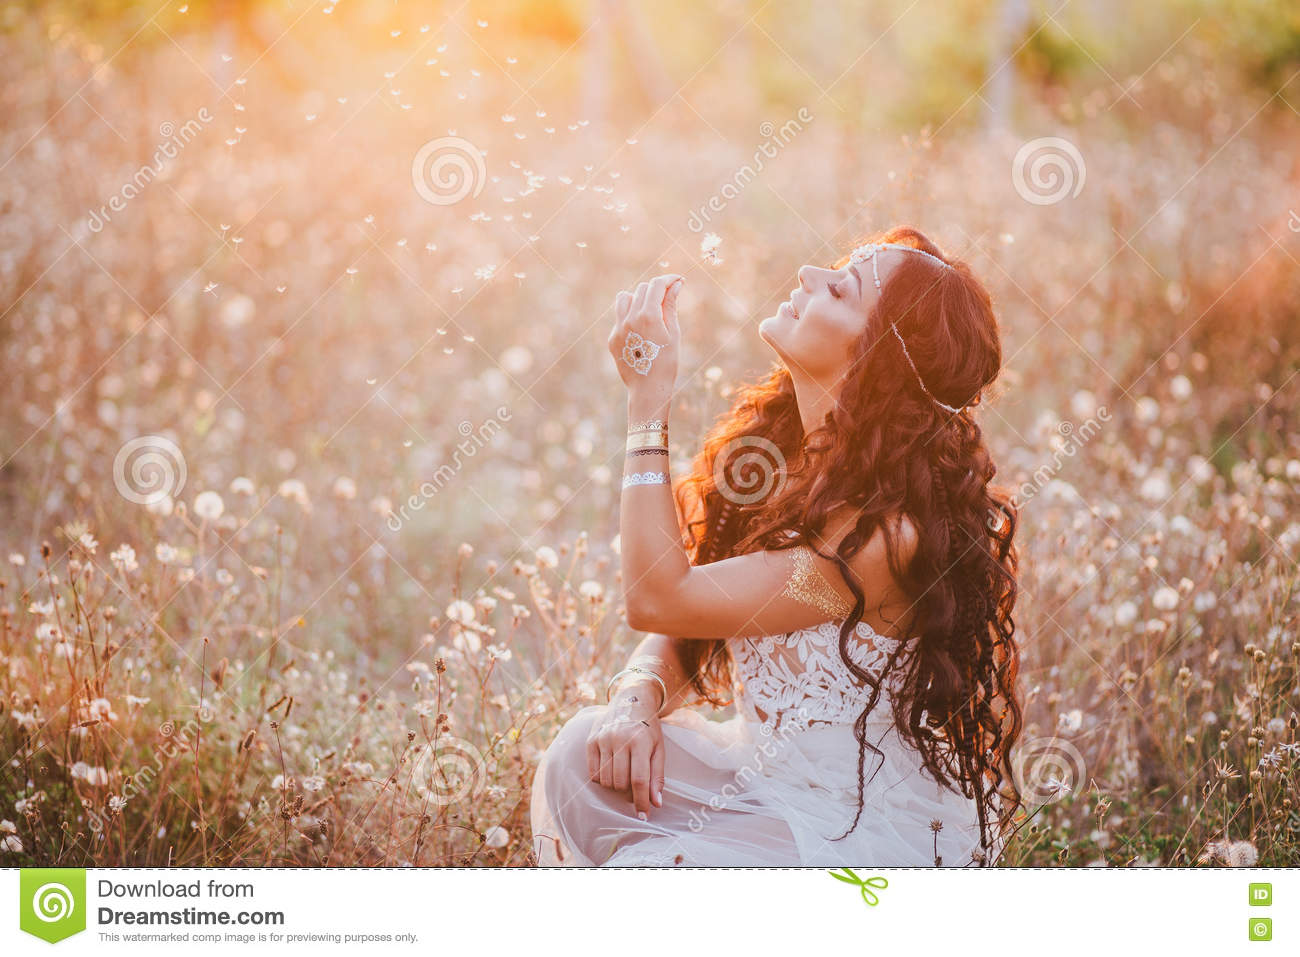 Beautiful young woman with long curly hair dressed in boho style dress posing in a field with dandelions